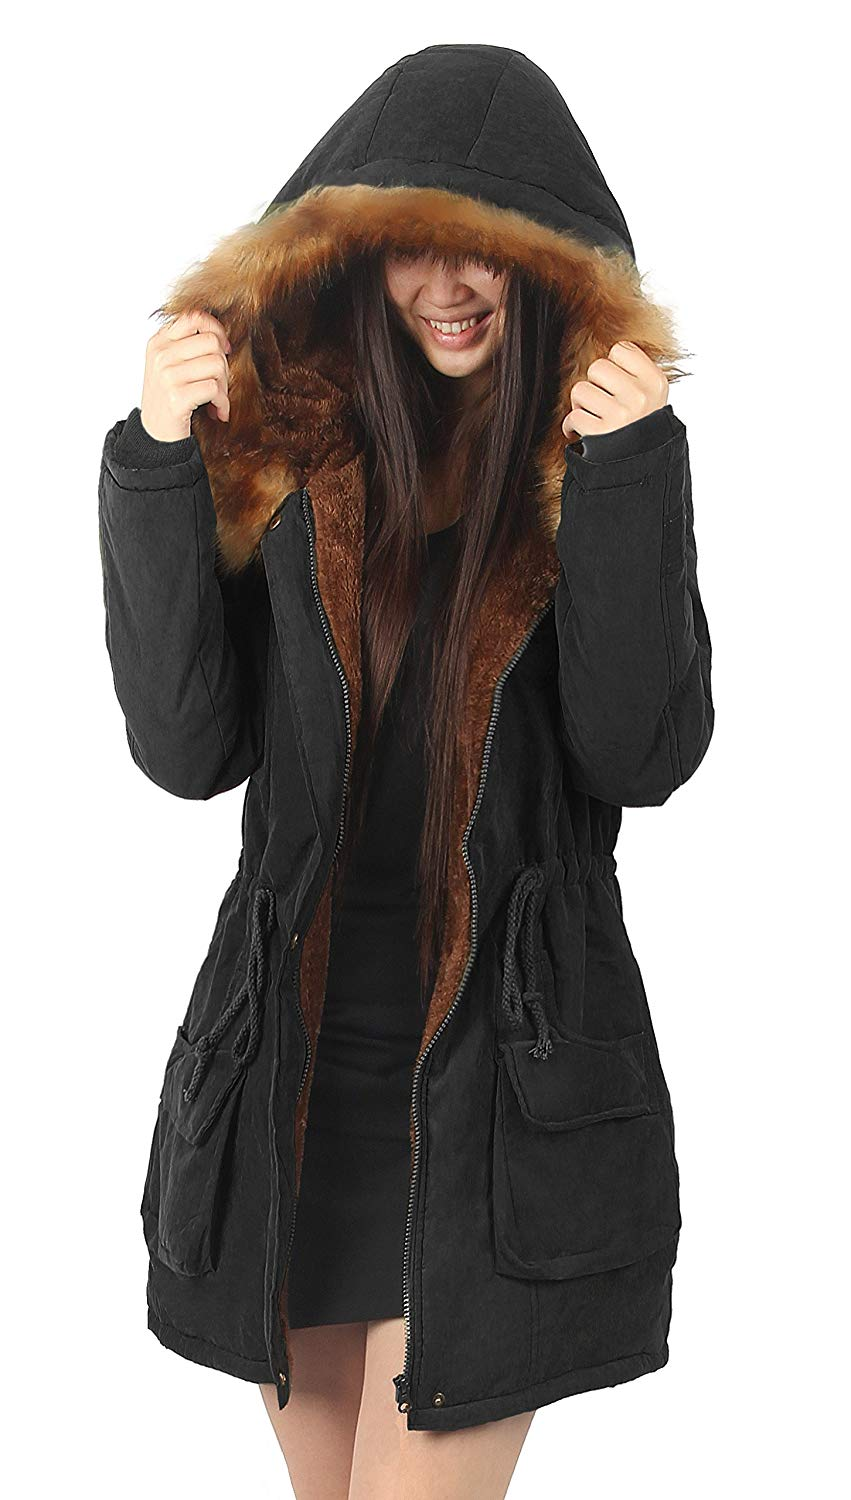 Winter Parkas – HEAT DISPENSER WITH STYLE